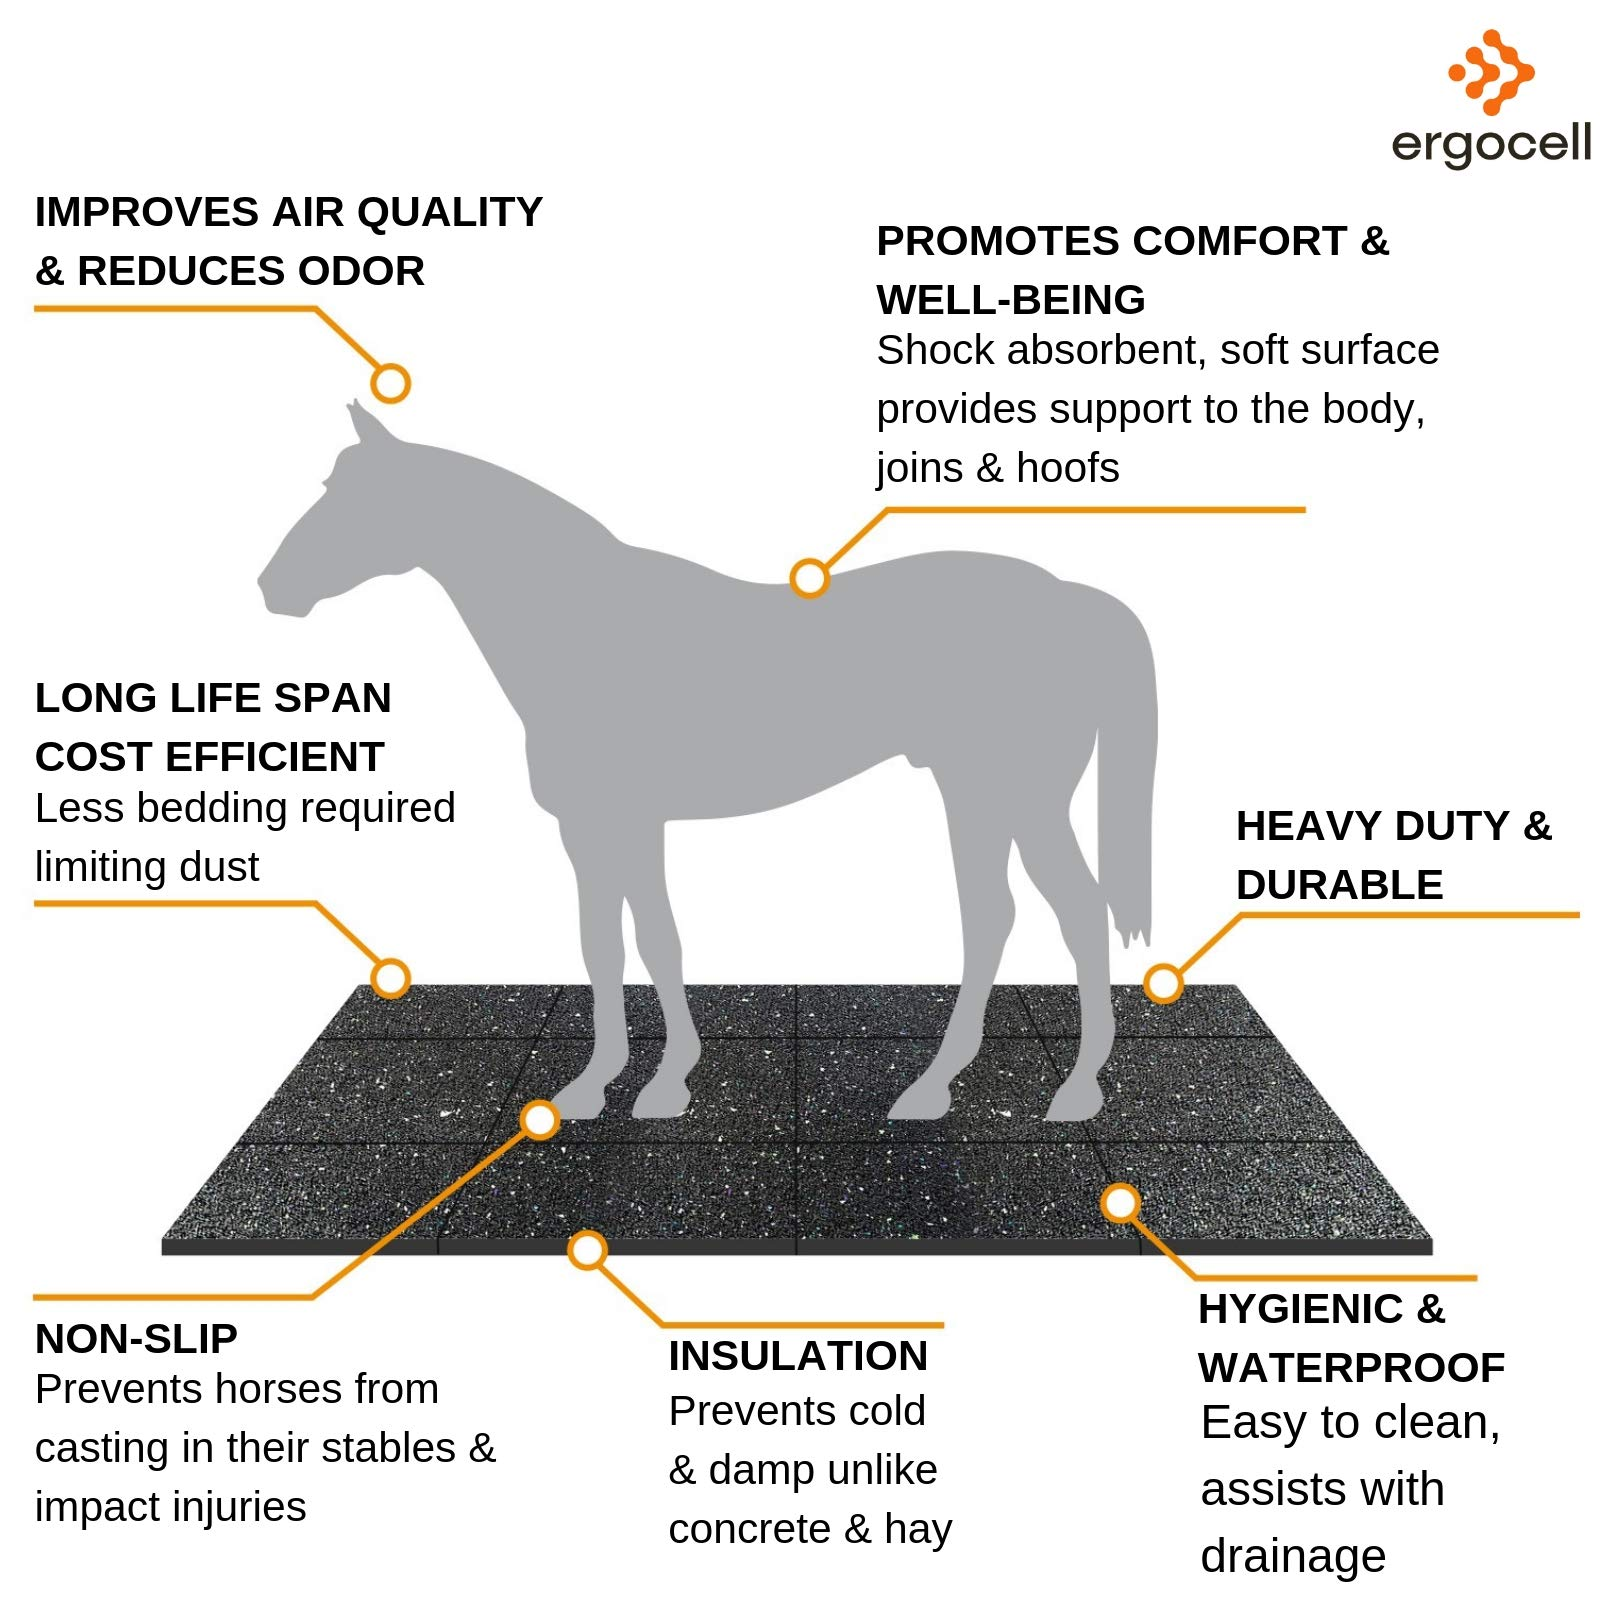 Ergocell Recycled Rubber Floor Mat – Shock Absorbent Gym Mat Flooring & Horse Stall Mat | Three Thicknesses, Multiple Sizes | 3/8'' - 2' x 1' by Ergocell (Image #8)